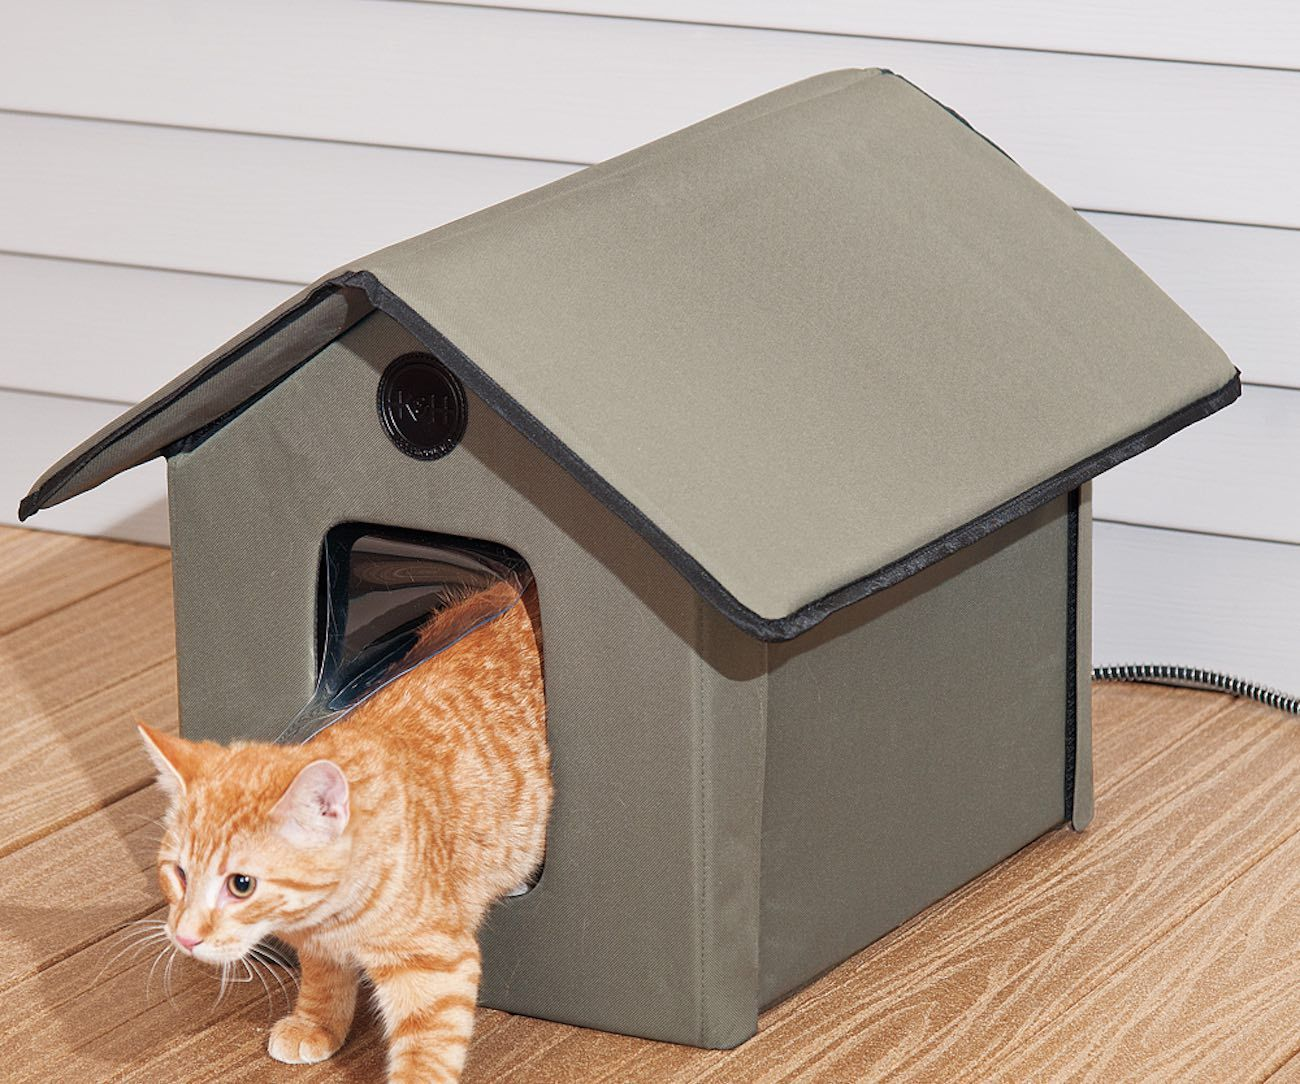 Outdoor Kitty House Heated And Water Resistant Version By K H Manufacturing Cat House Cat Bed Cat Pet Supplies